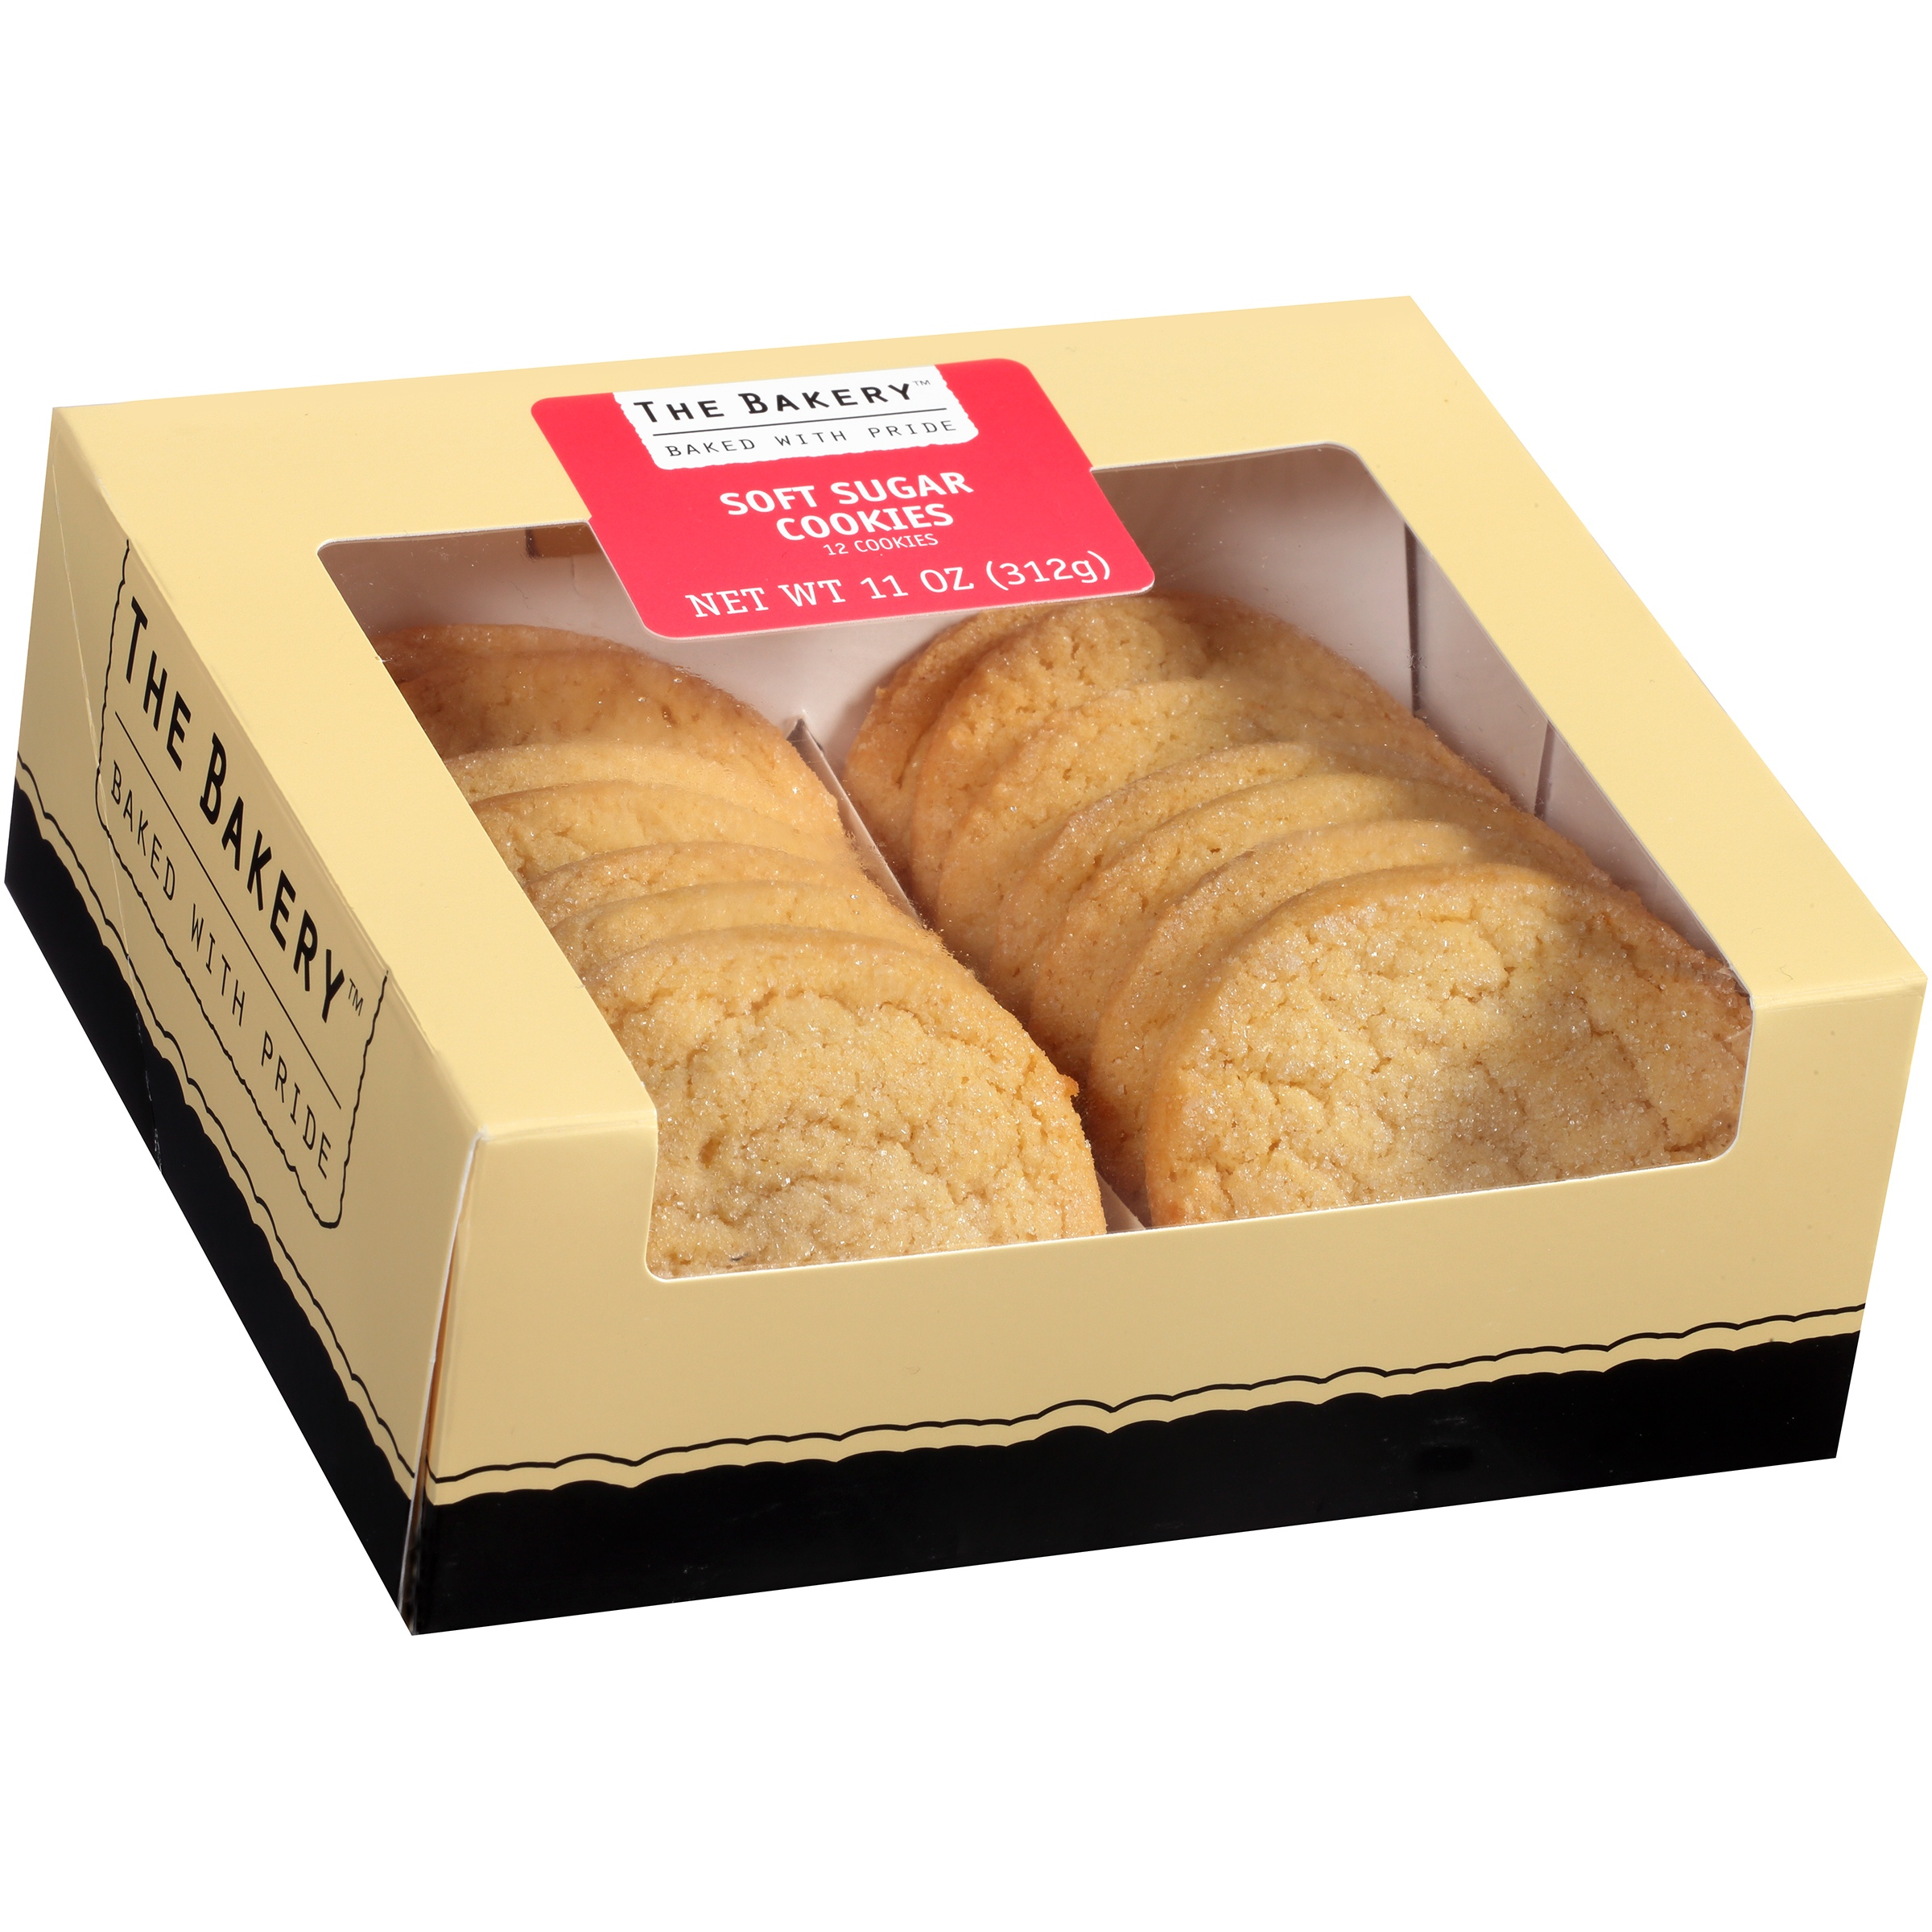 The Bakery™ Soft Sugar Cookies 11 oz. Box